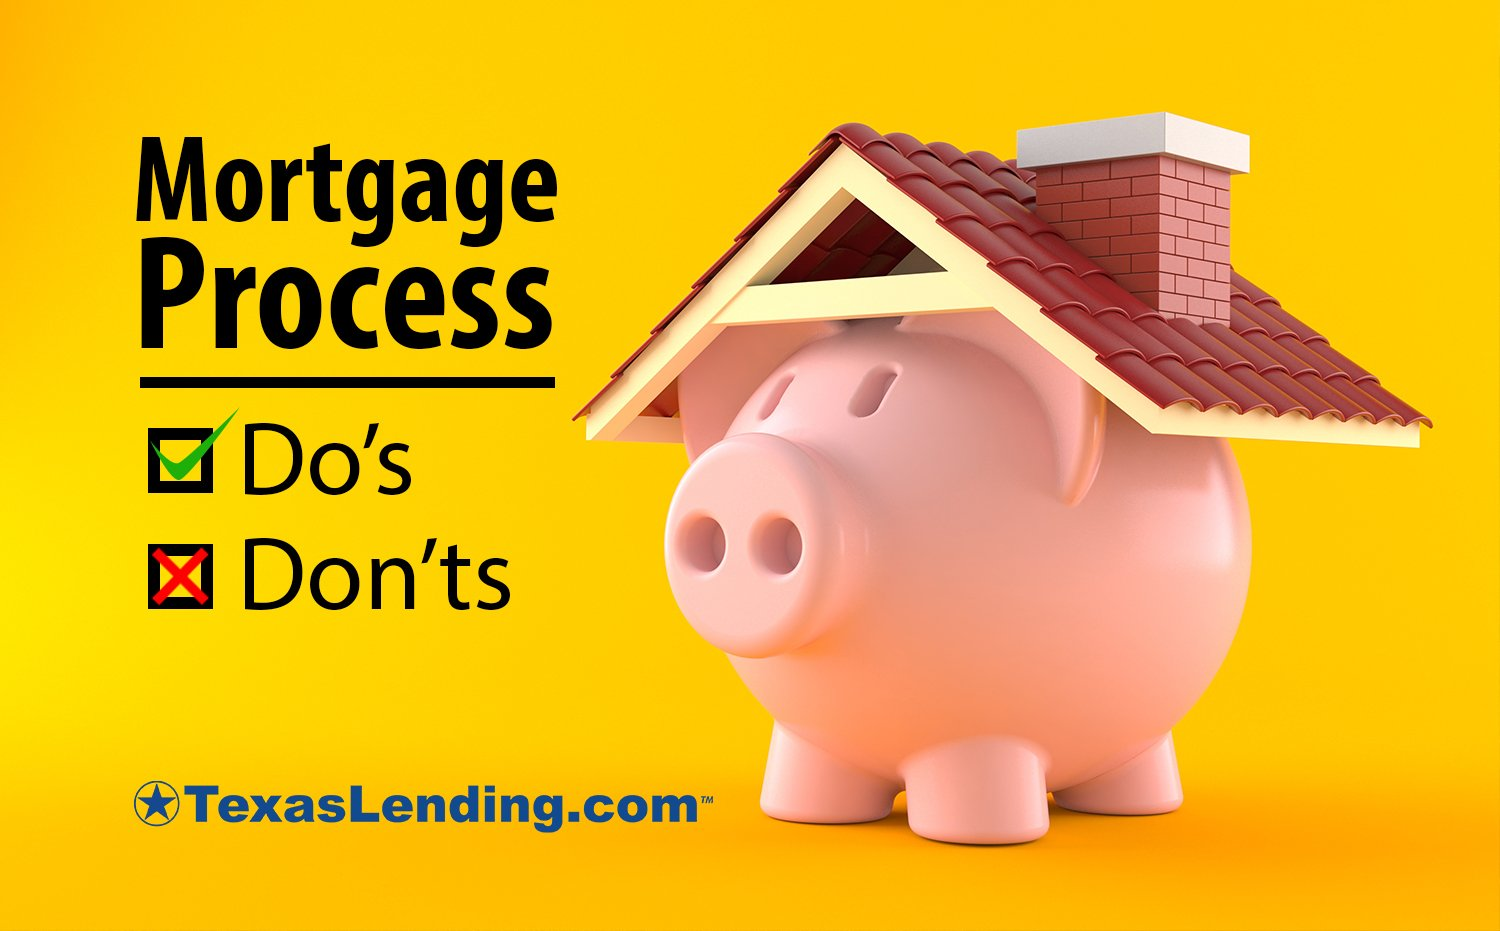 Mortgage loan process do's and don'ts